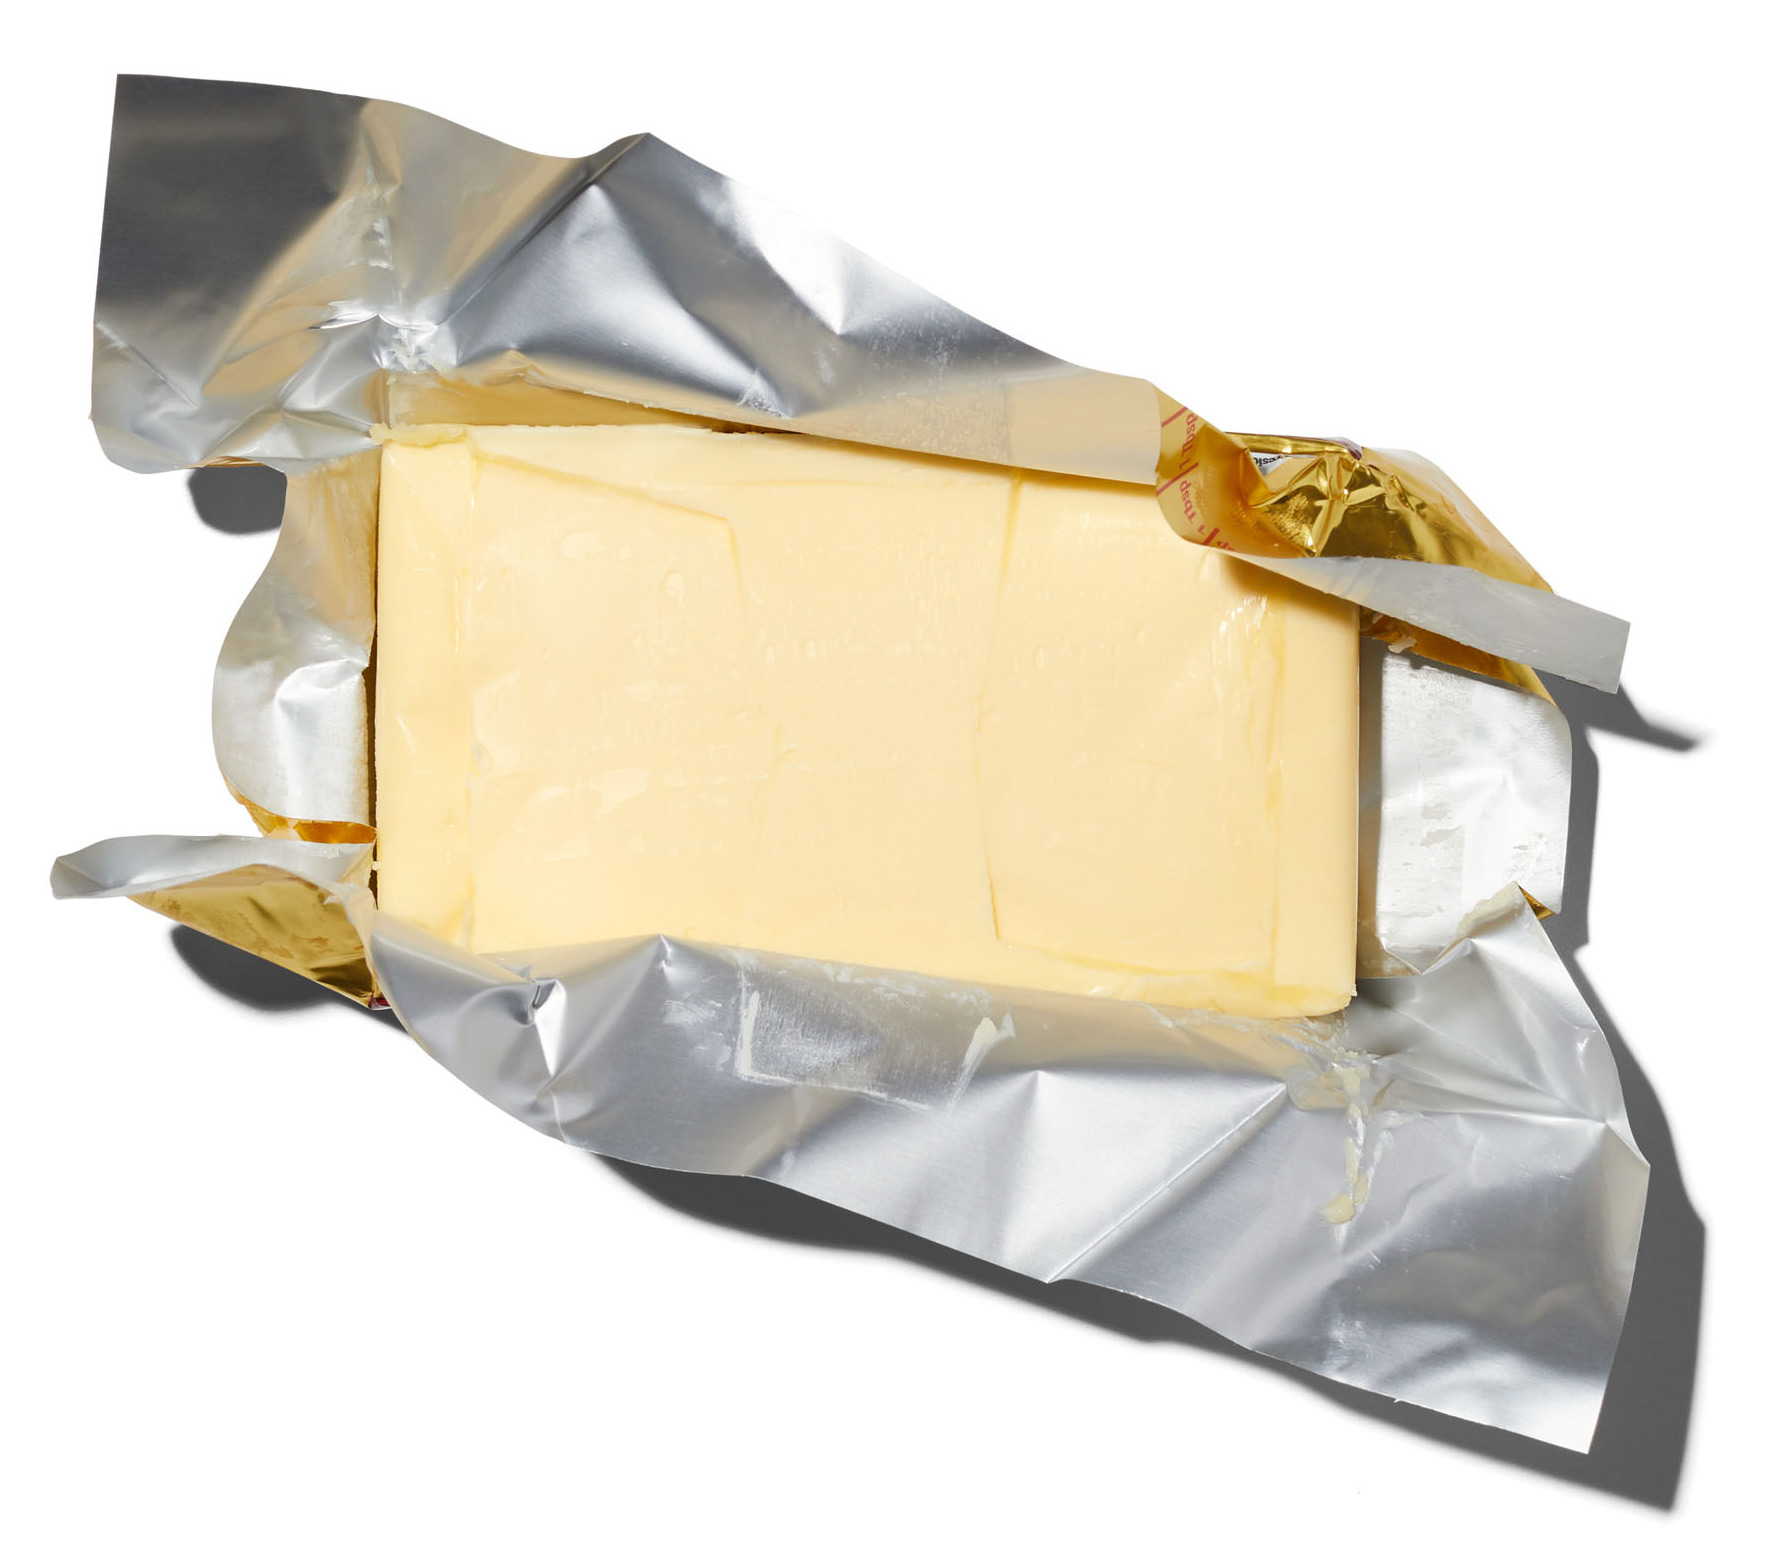 open package of butter